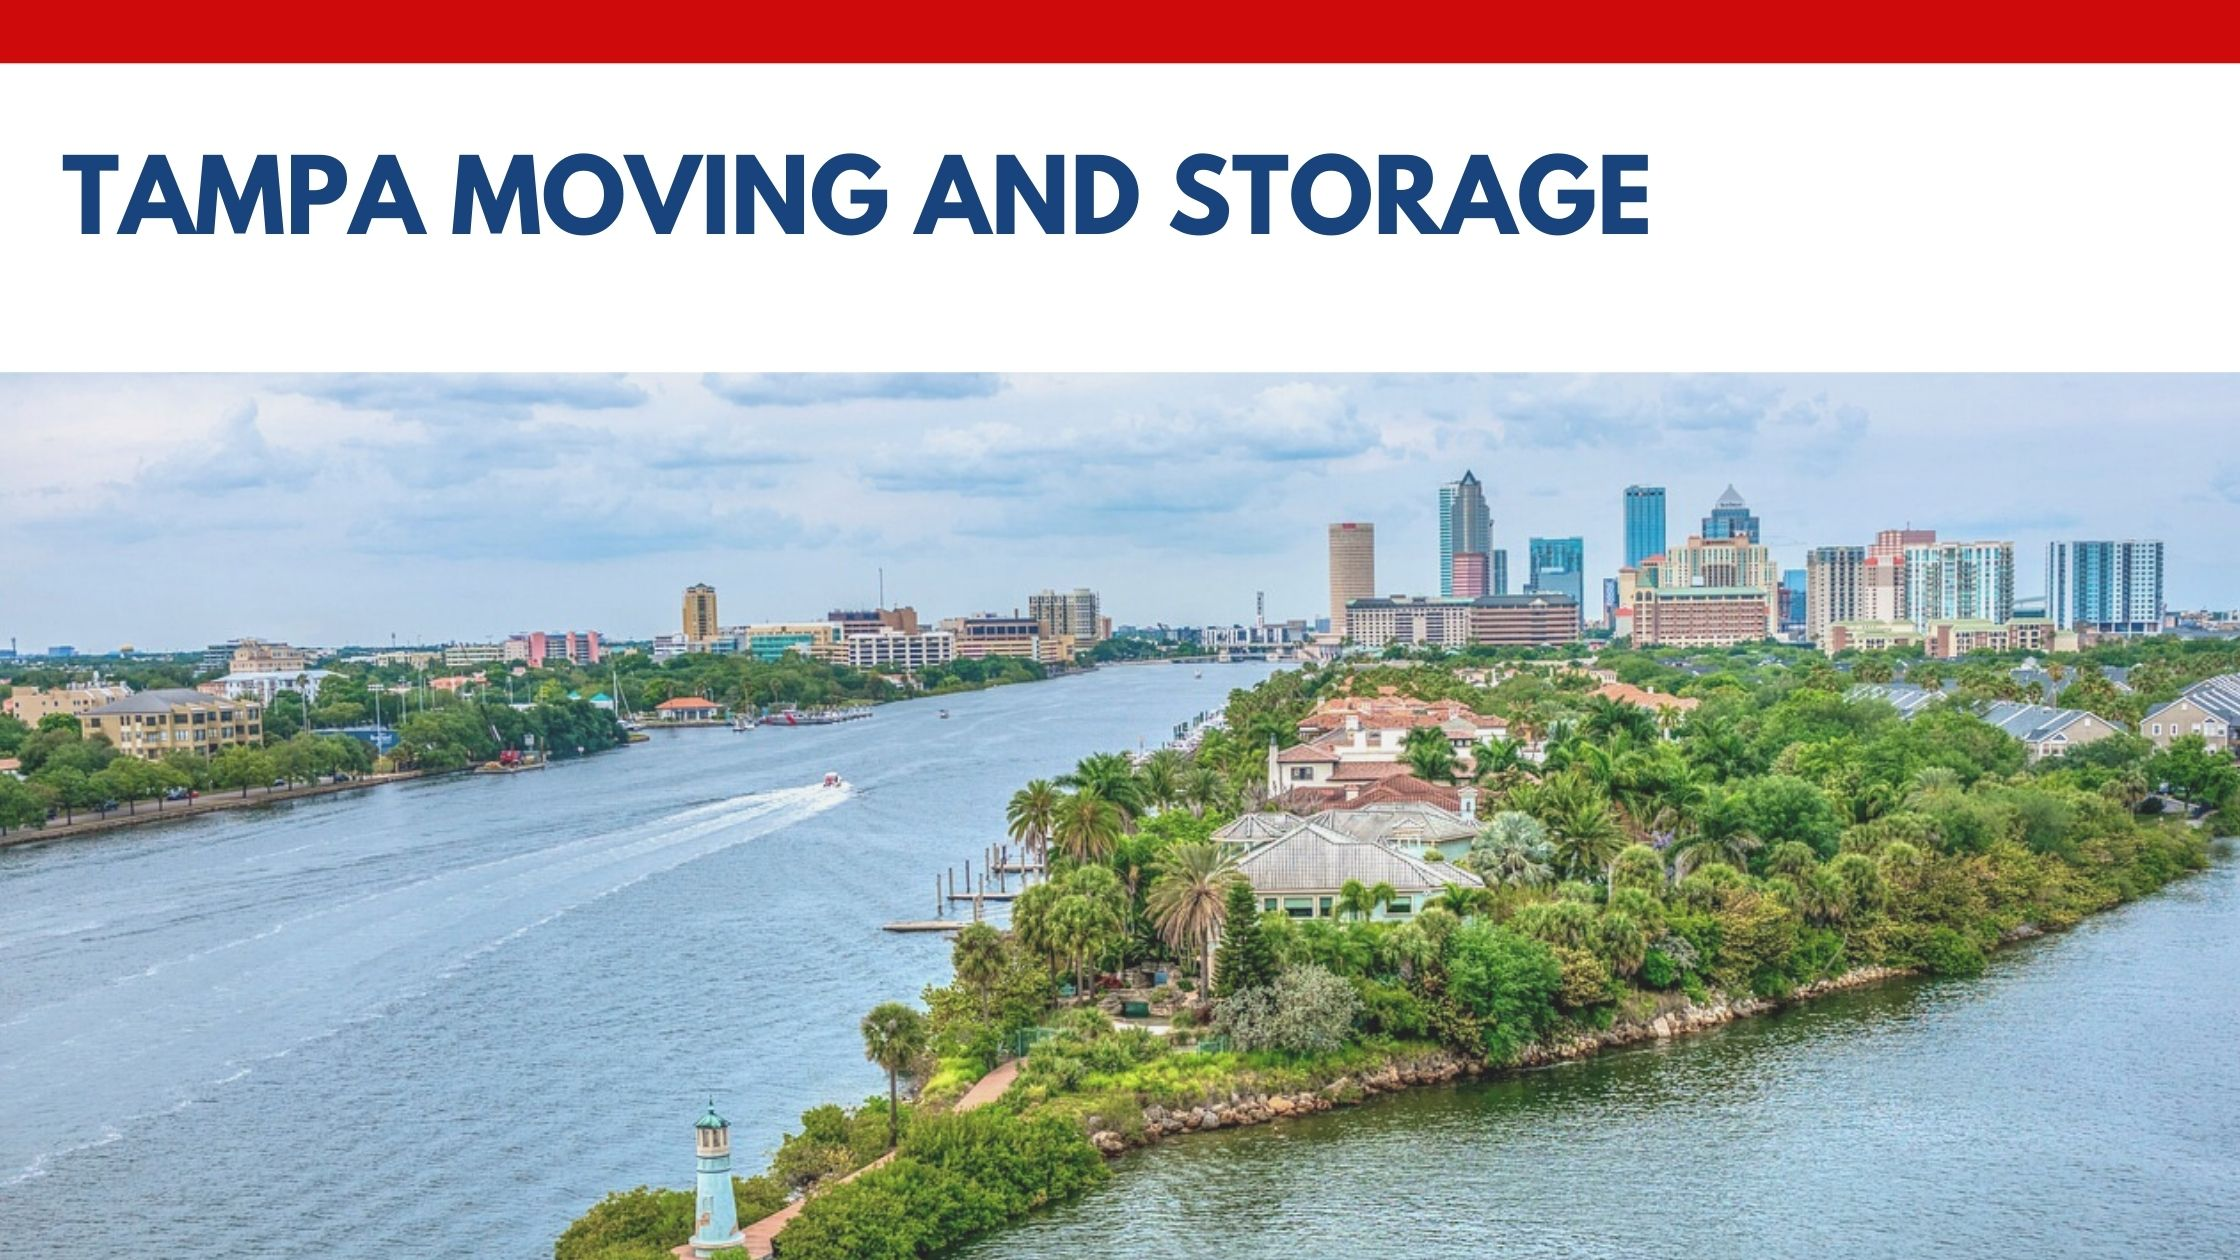 Tampa Moving and Storage